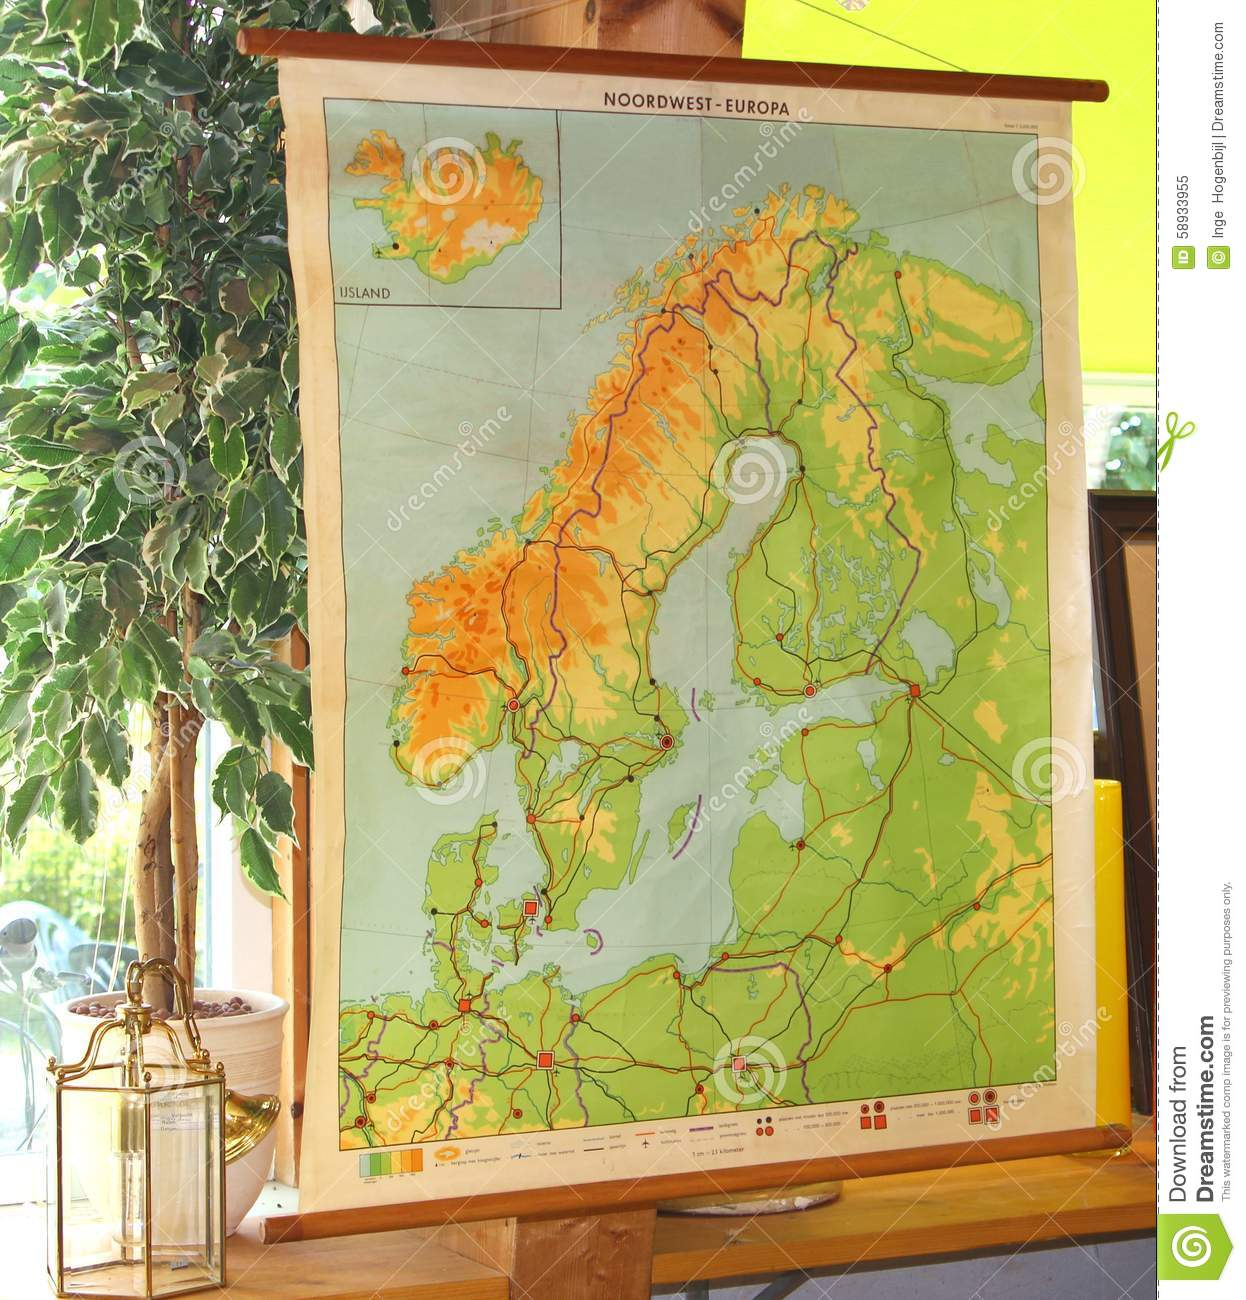 Vintage And Retro Topographic Map Of Northwest Europe Stock Image ...